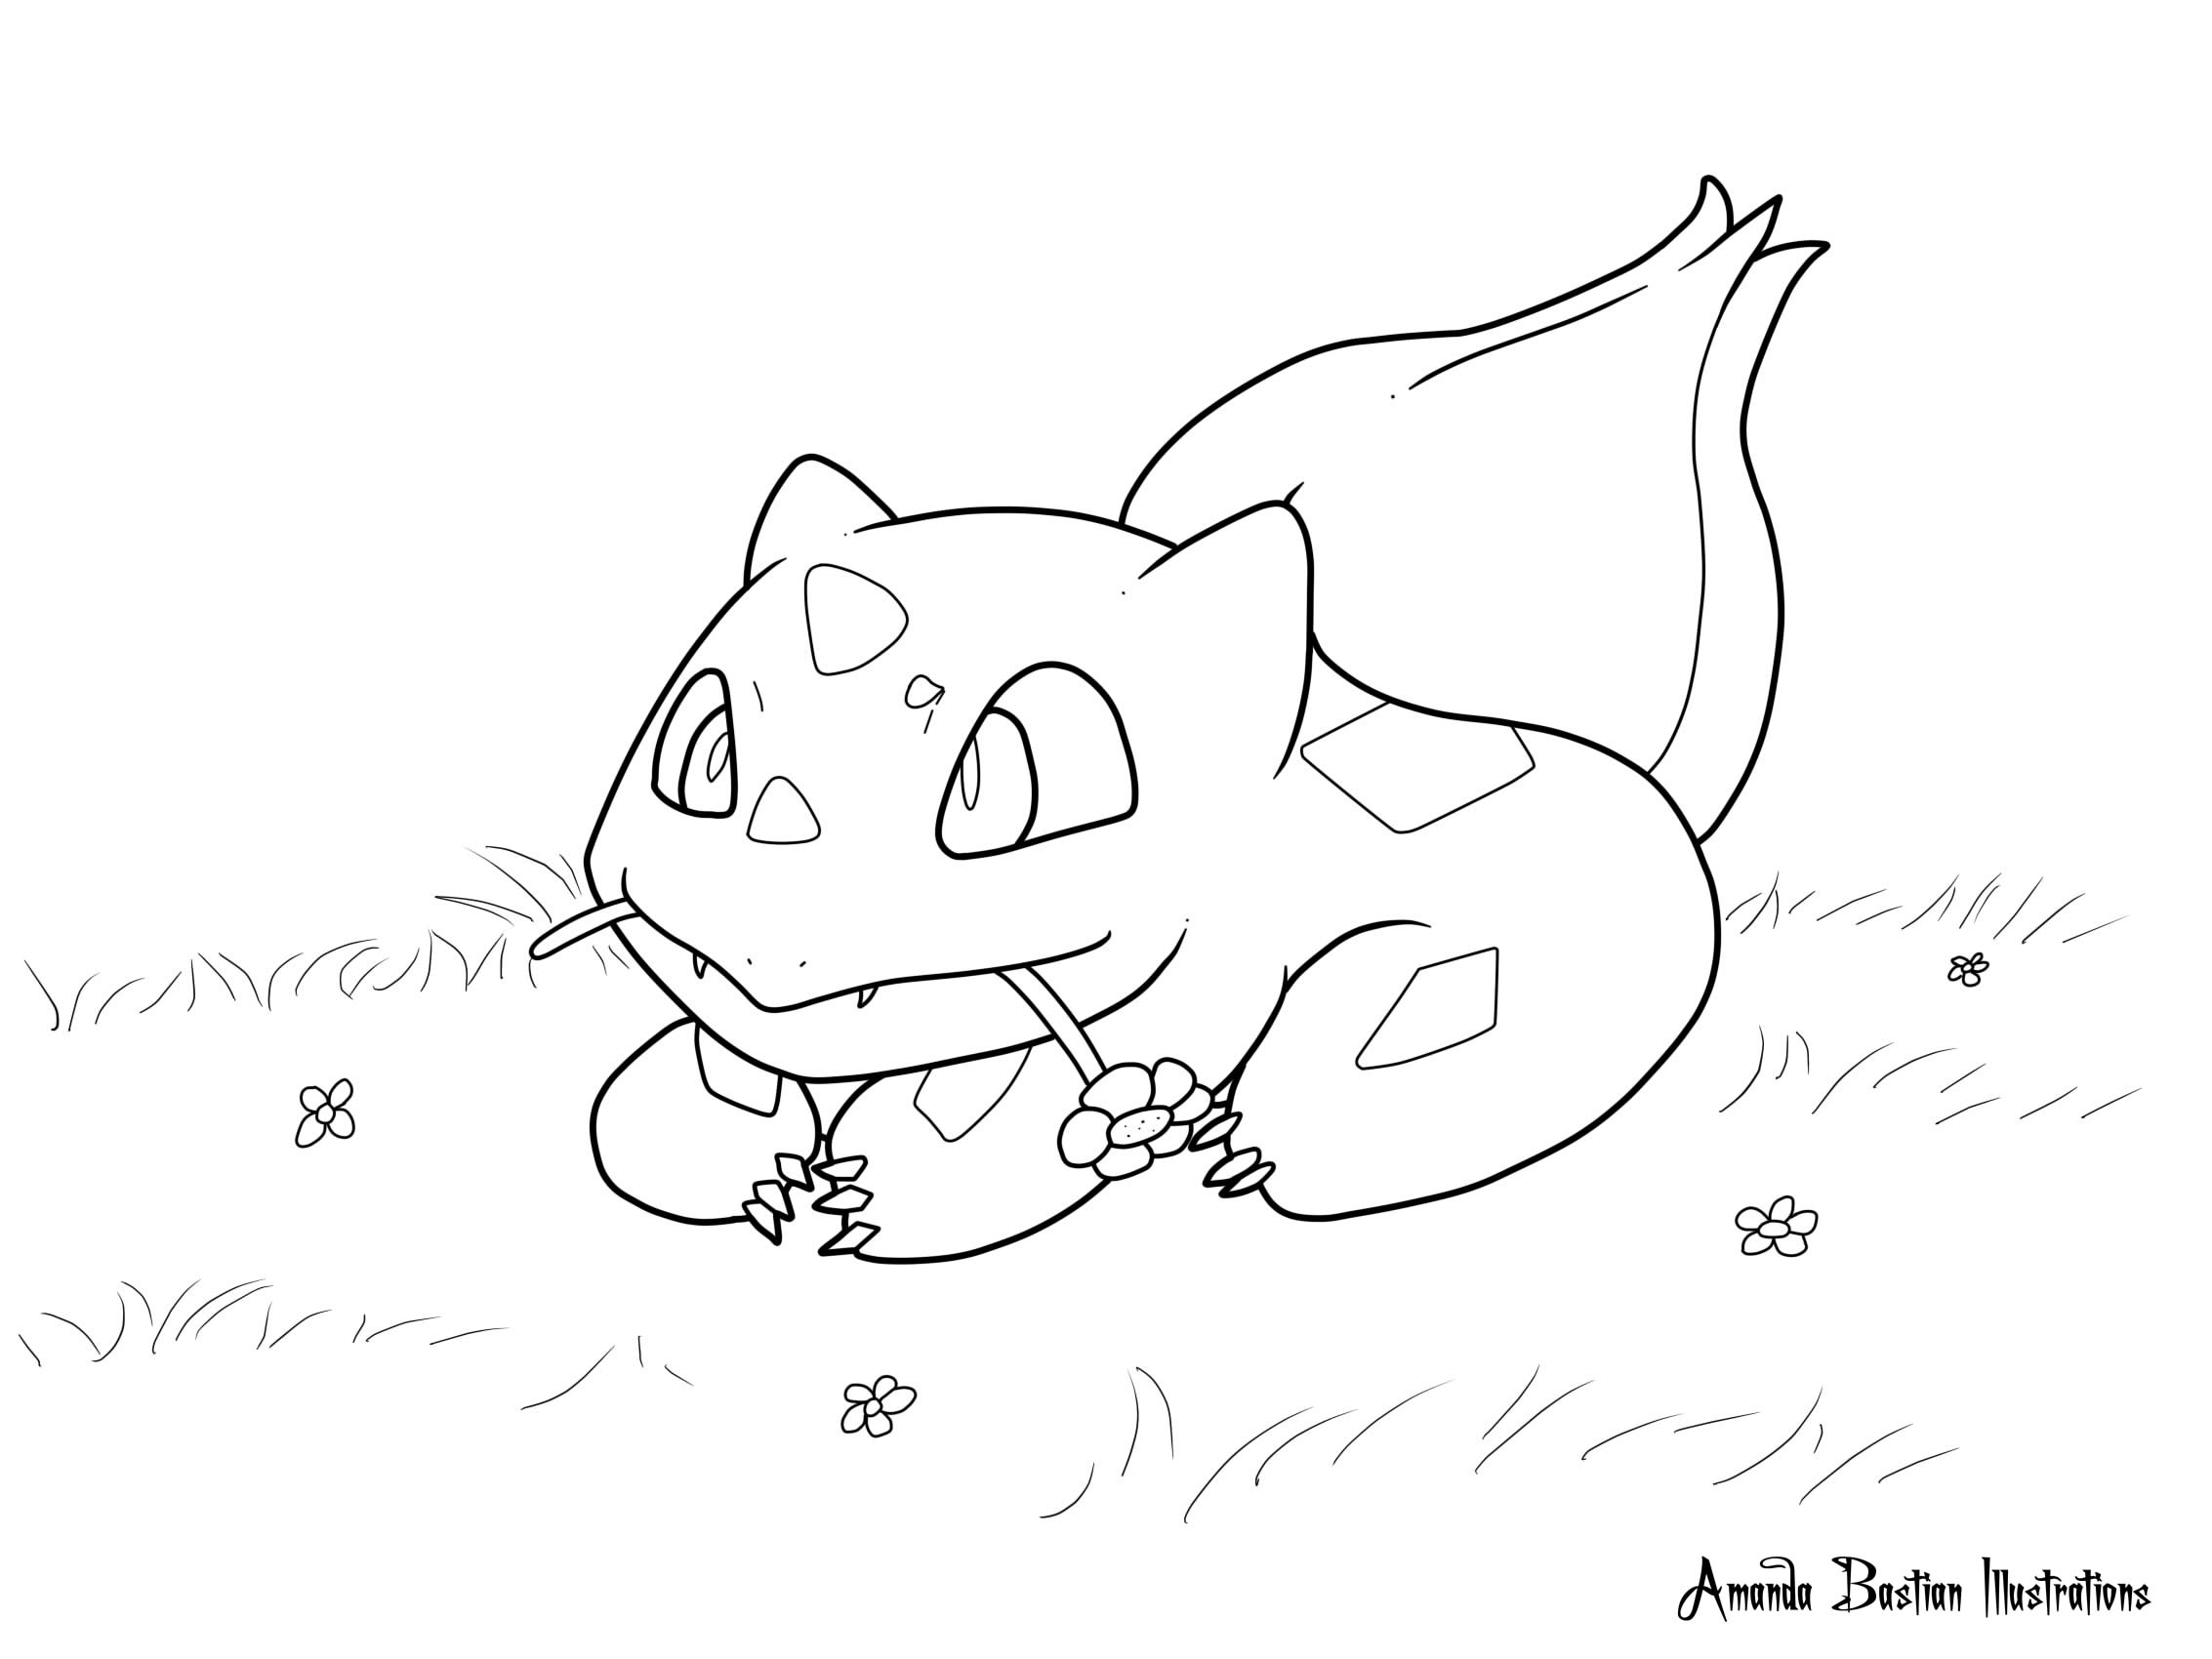 Bulbasaur Coloring Page By Damien Shade On Deviantart